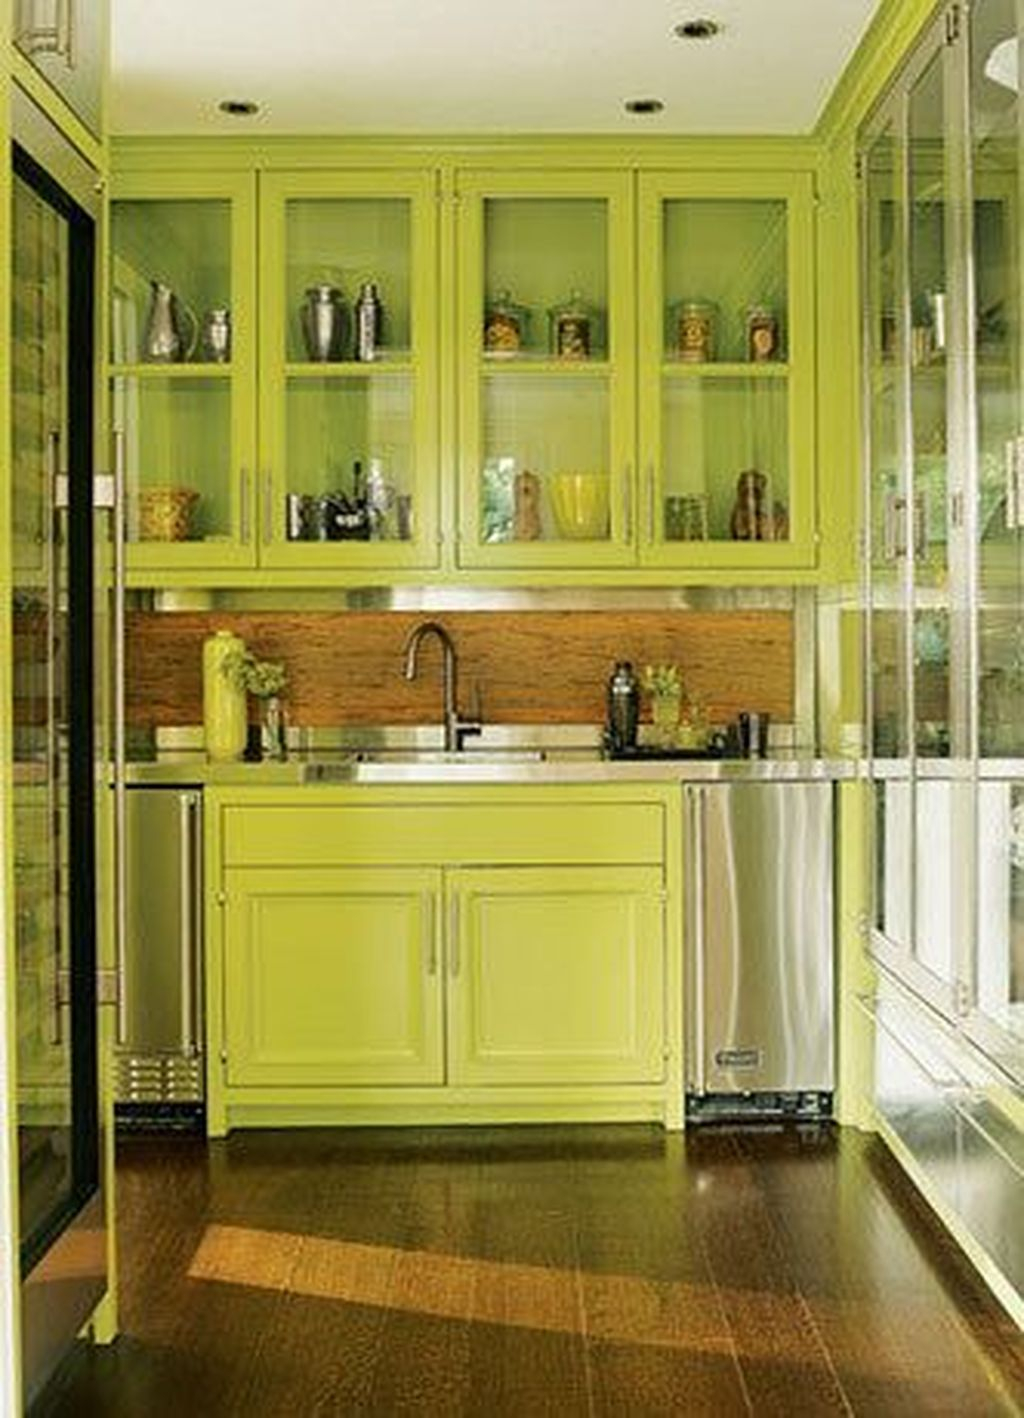 Adorable Rainbow Colorful Kitchens Design Ideas To Looks More Awesome 19